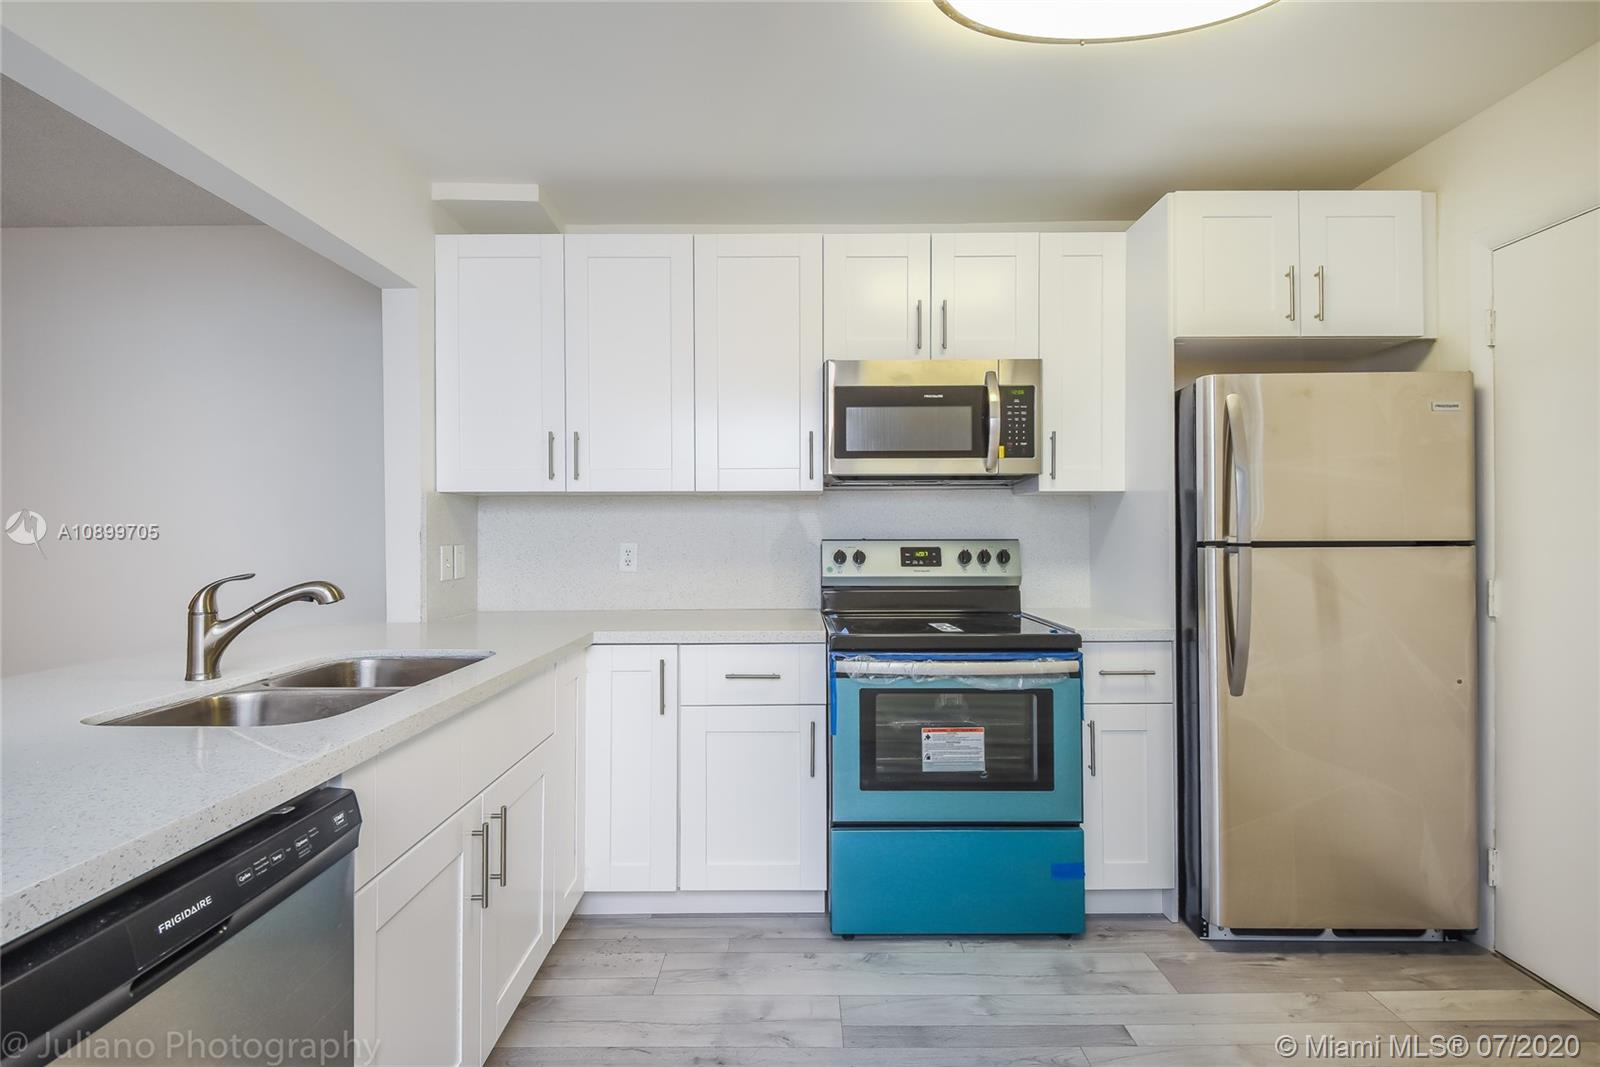 BEAUTIFUL FRIST FLOOR CORNER CONDO. PARKING IN FRONT OF THE CONDO. VERY SPACIOUS EAT-IN- KITCHEN. GREAT FLOOR PLAN. CERAMIC TILE THROUGH OUT. SCREEN ENCLOSED PATIO. LARGE LIVING AND DINNING AREA. LOTS OF CLOSET SPACE. ALL AGES WELCOME. OWNER IS VERY MOTIVATED.FULLY RENOVATED 1 YEAR AGO, NEW APPLIANCES, FLOOR , NEW MODERN KITCHEN.